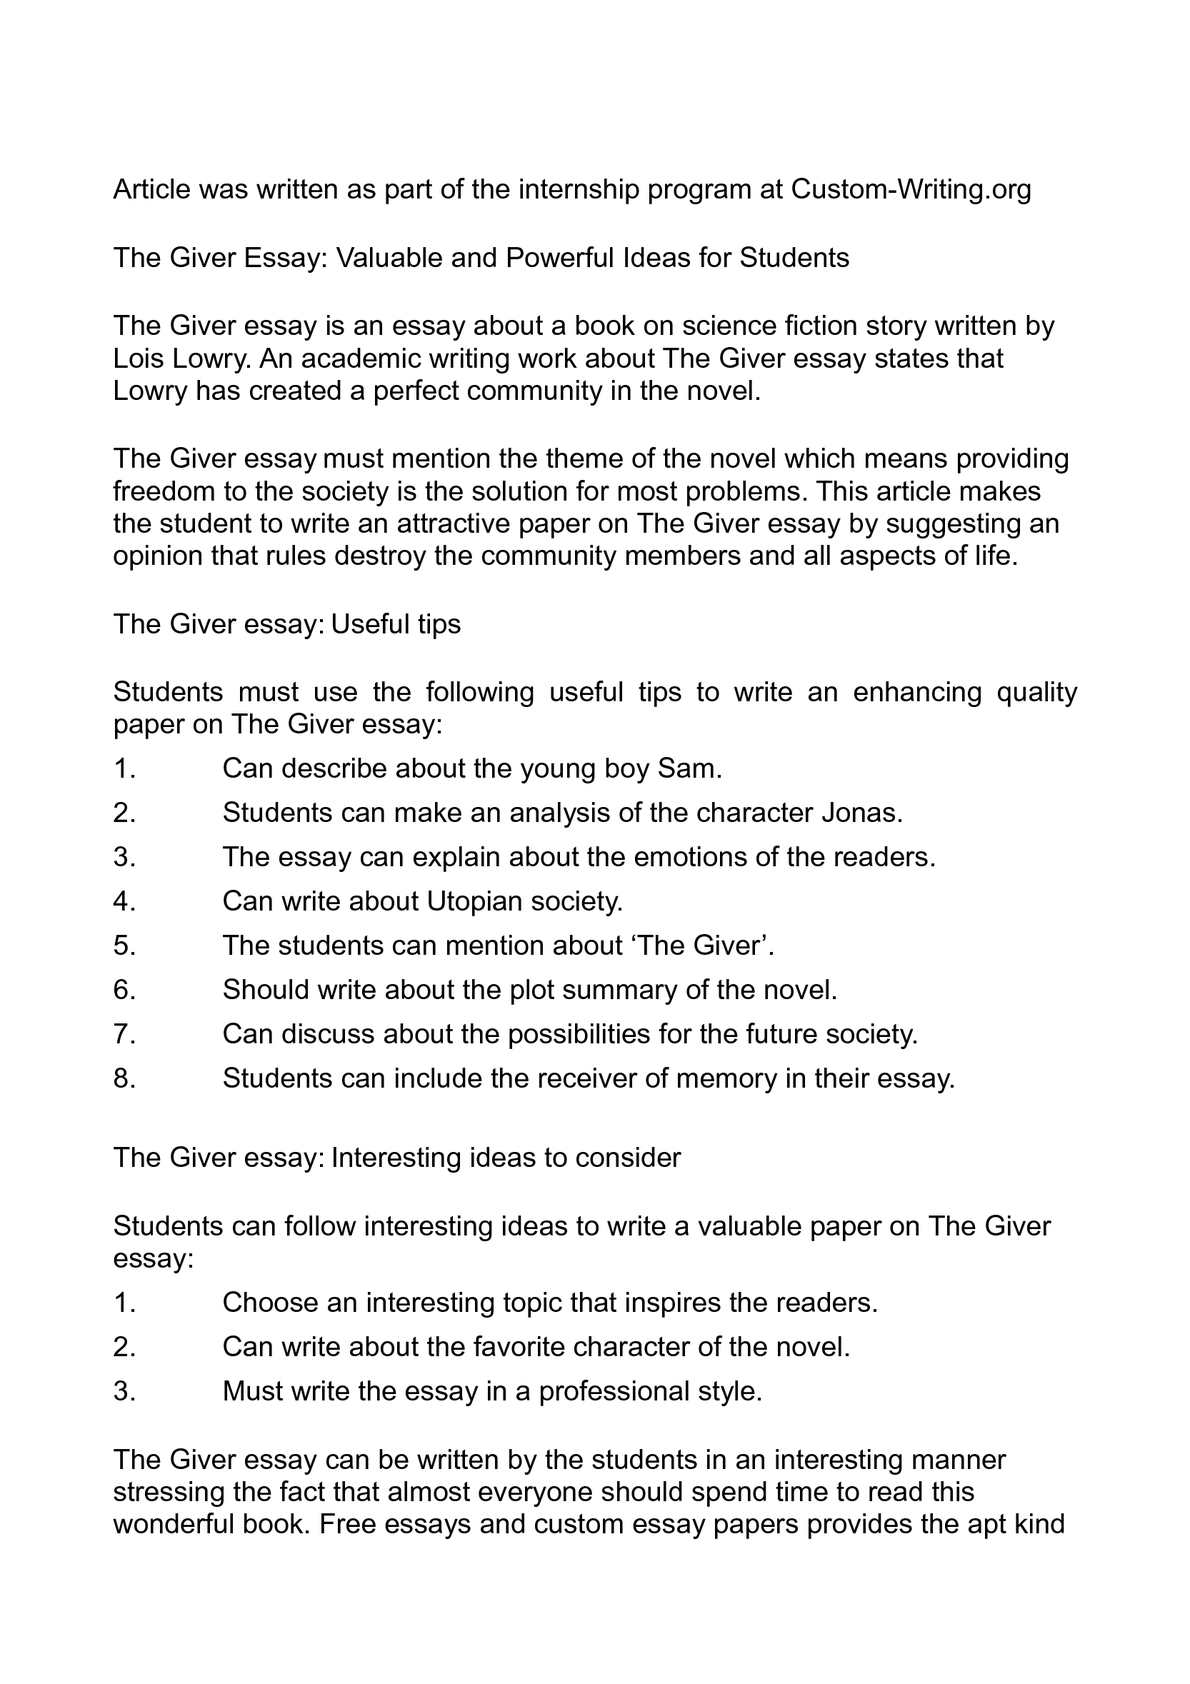 004 The Giver Essay P1 Fearsome Topics Ideas Questions Full